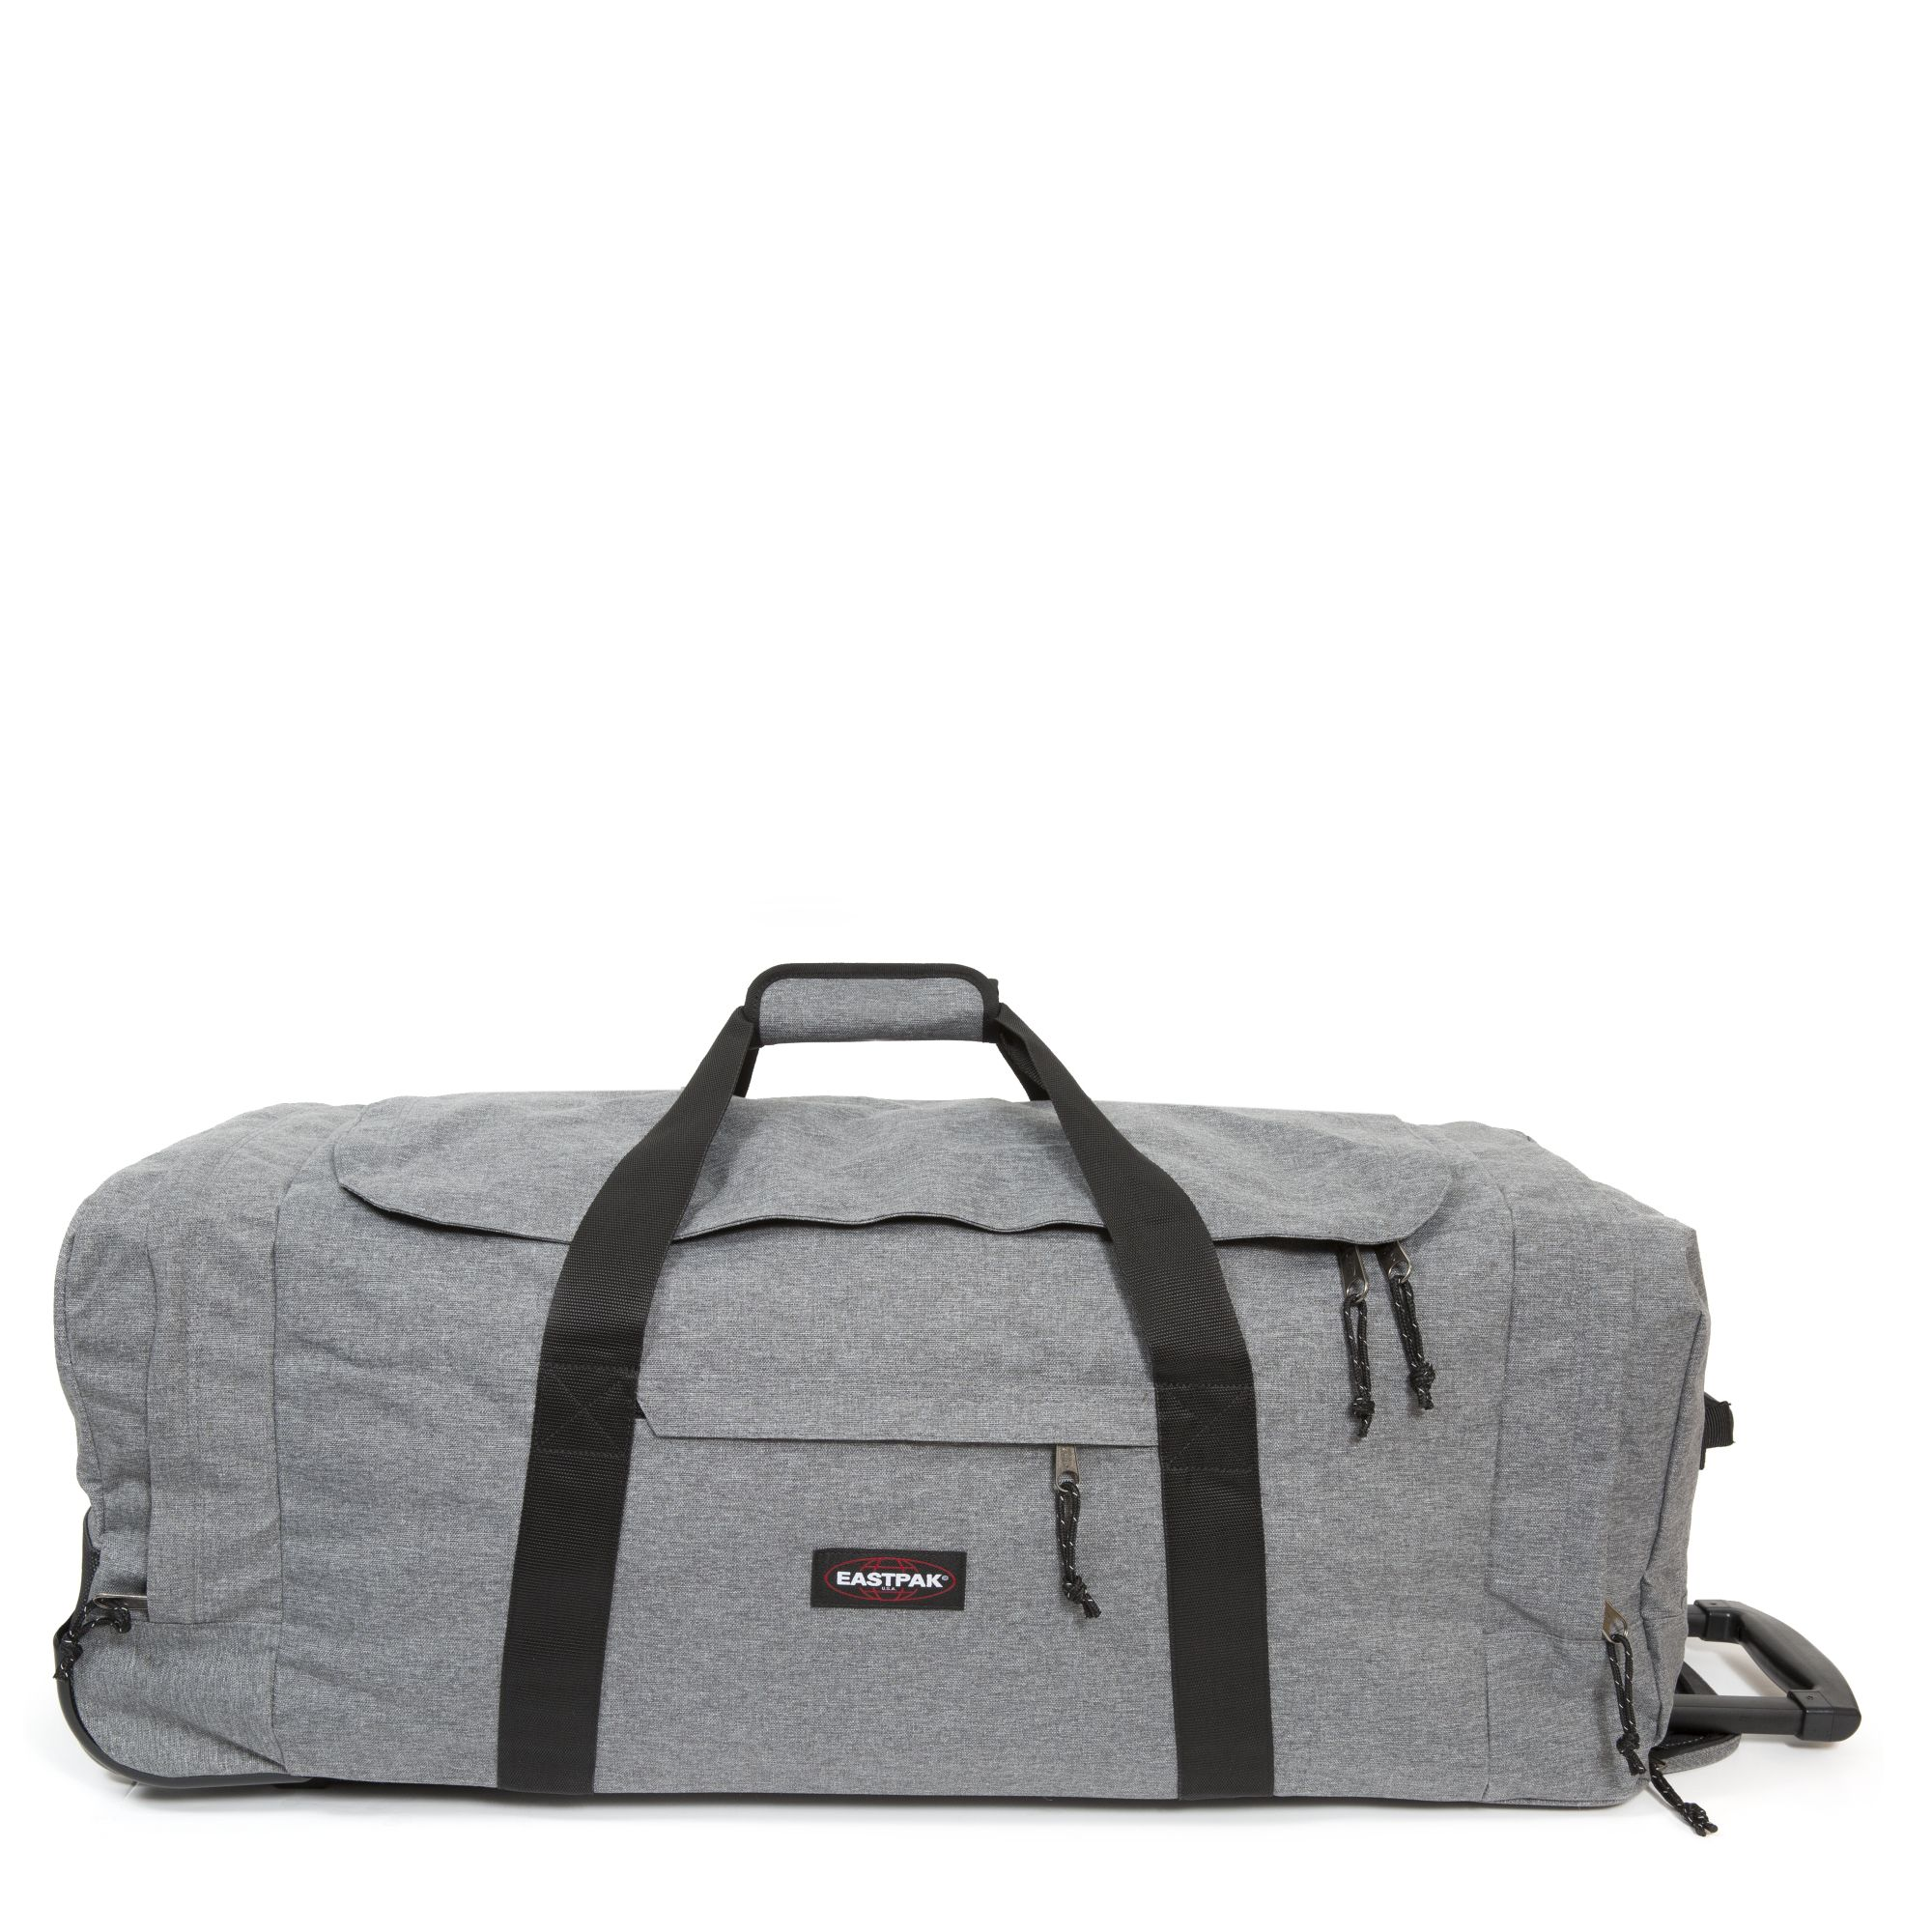 eastpak leatherface l rollenreisetasche 86 5 cm kaufen bei markenkoffer. Black Bedroom Furniture Sets. Home Design Ideas